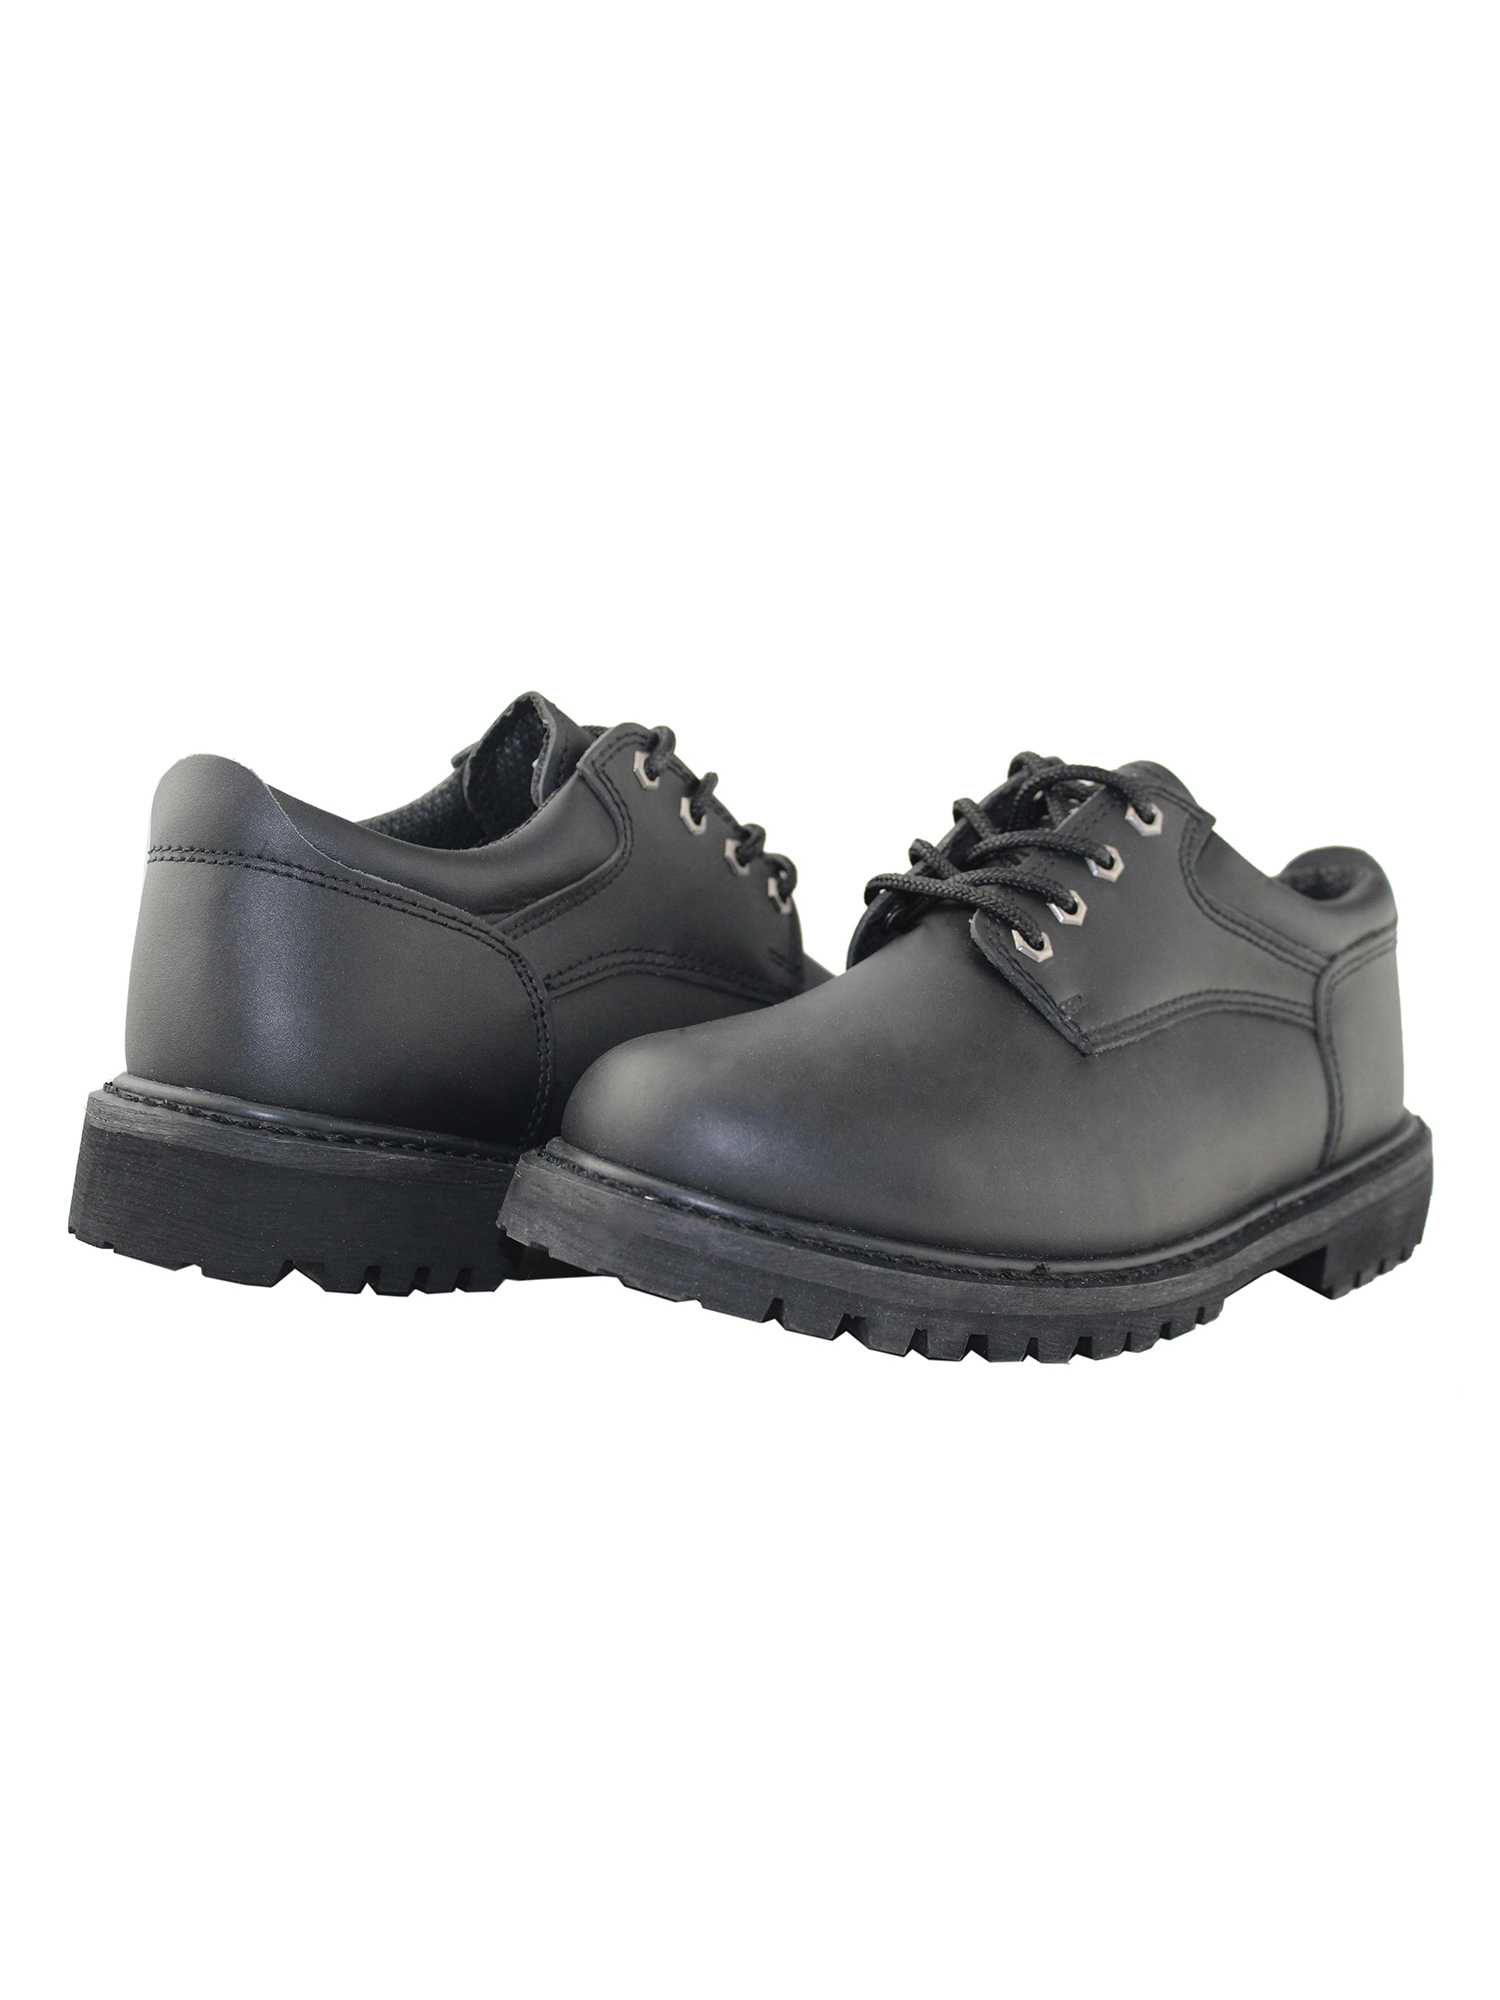 Oil-Resistant Safety Shoes - Walmart